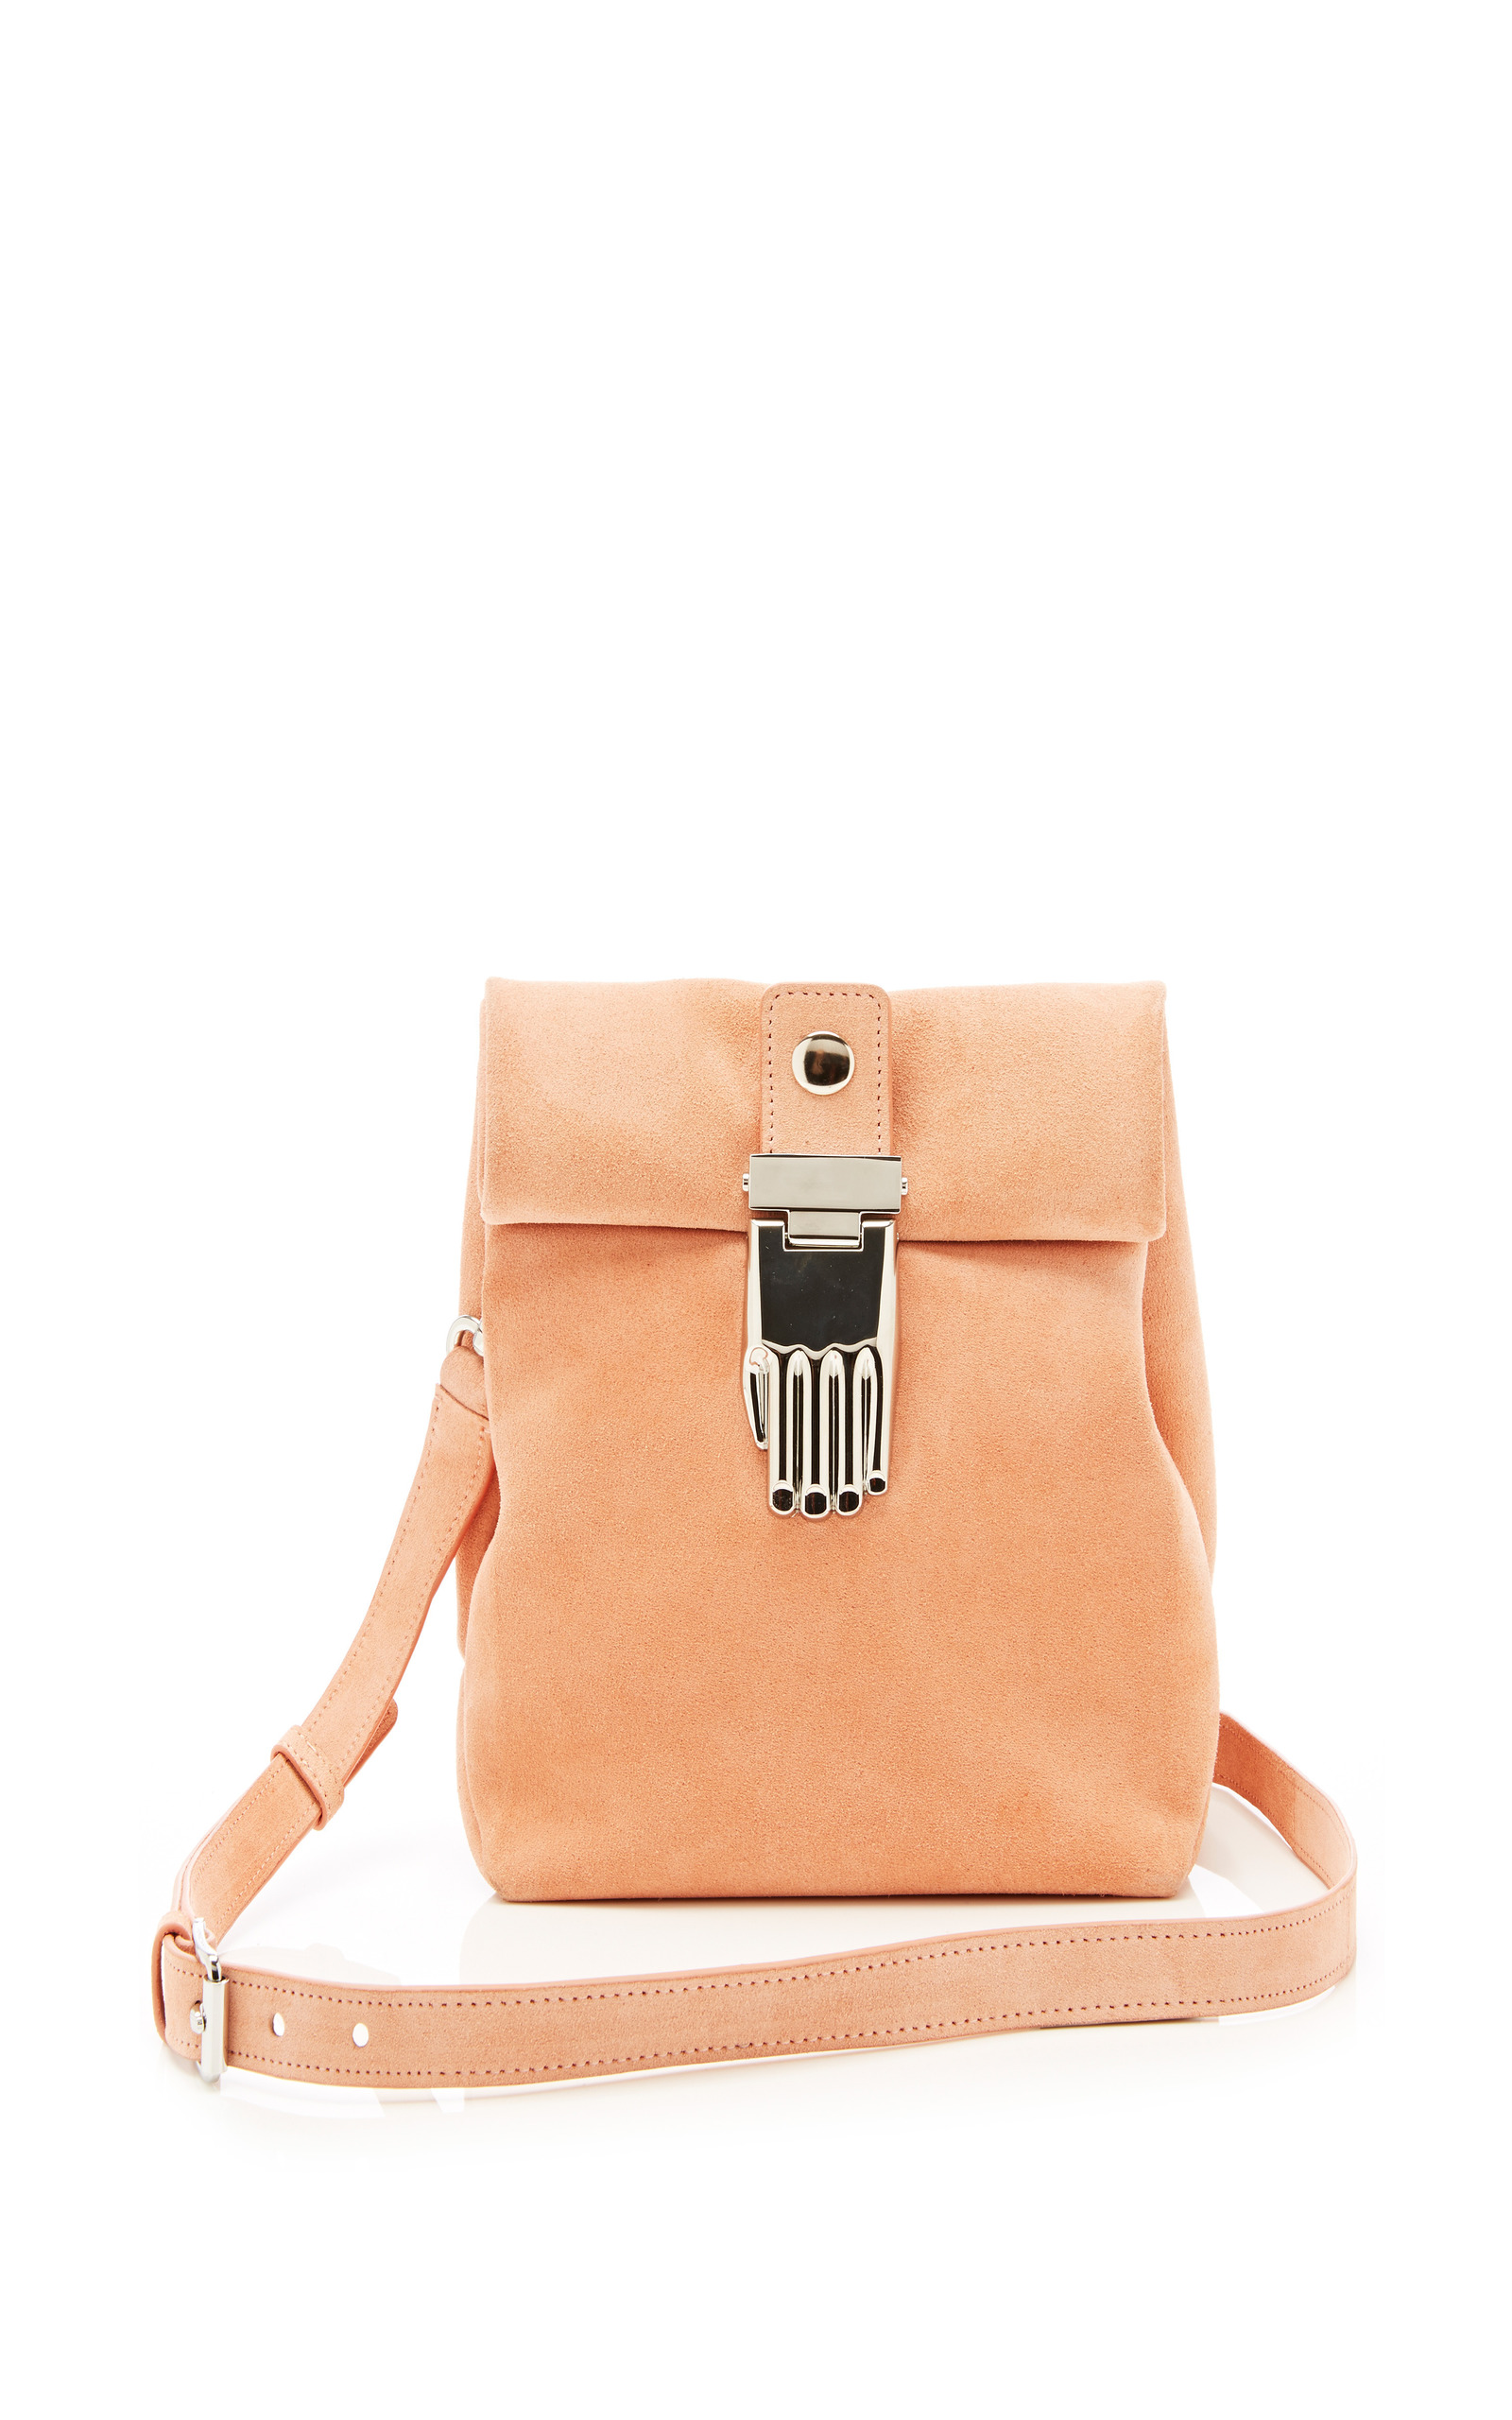 athena small lunch bag in blush pink by opening moda